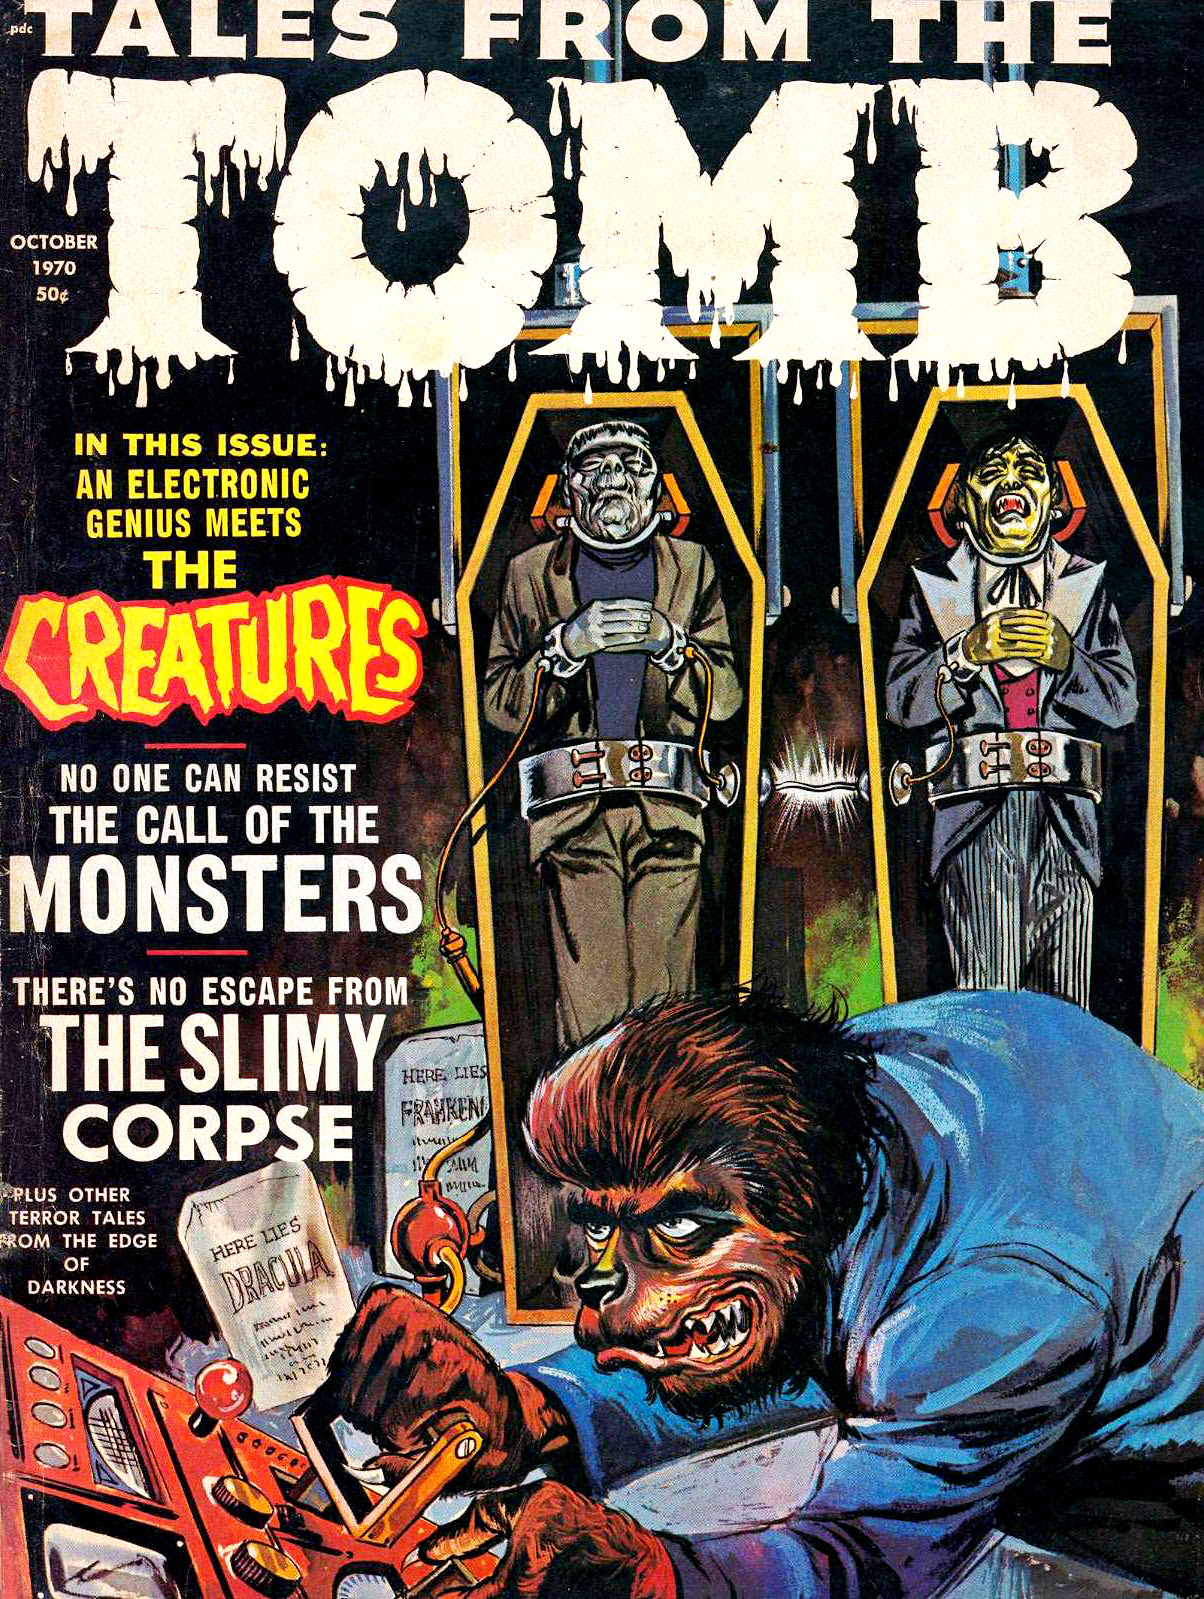 Tales from the Tomb - Vol. 2 #5 (Eerie Publications, 1970)